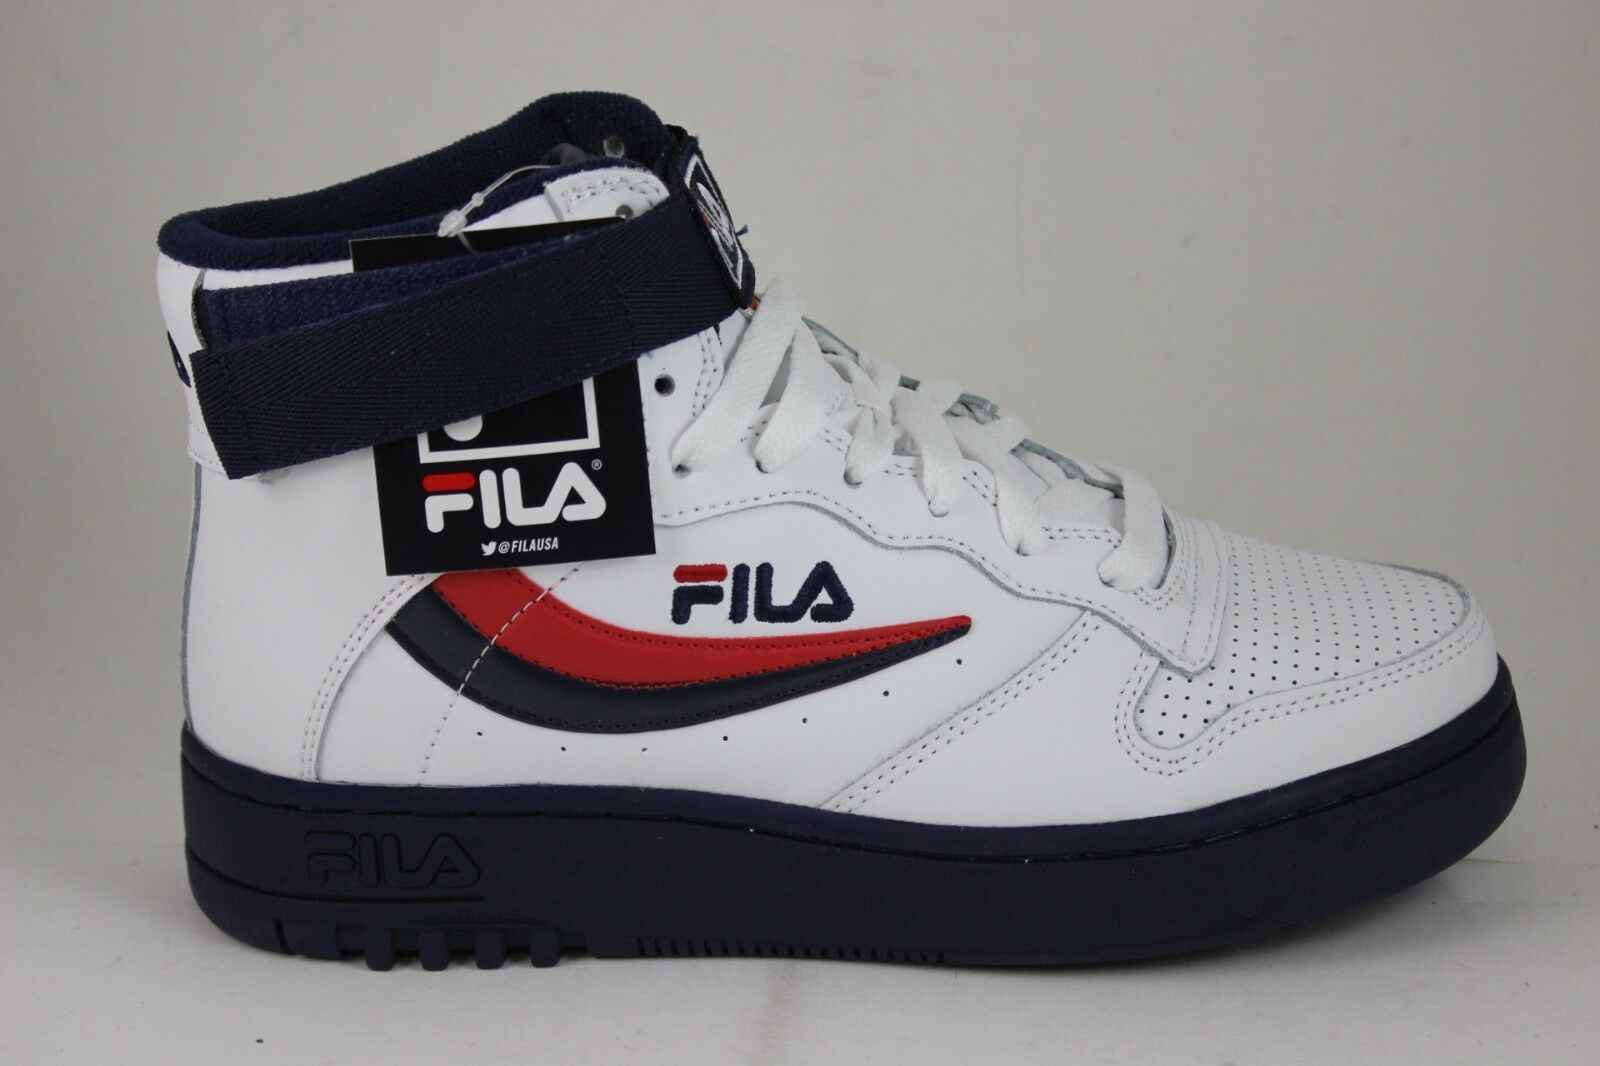 Men's Fila Retro Heritage Basketball  FX-100 White/Navy/Red 1VB90150-125 New New shoes for men and women, limited time discount